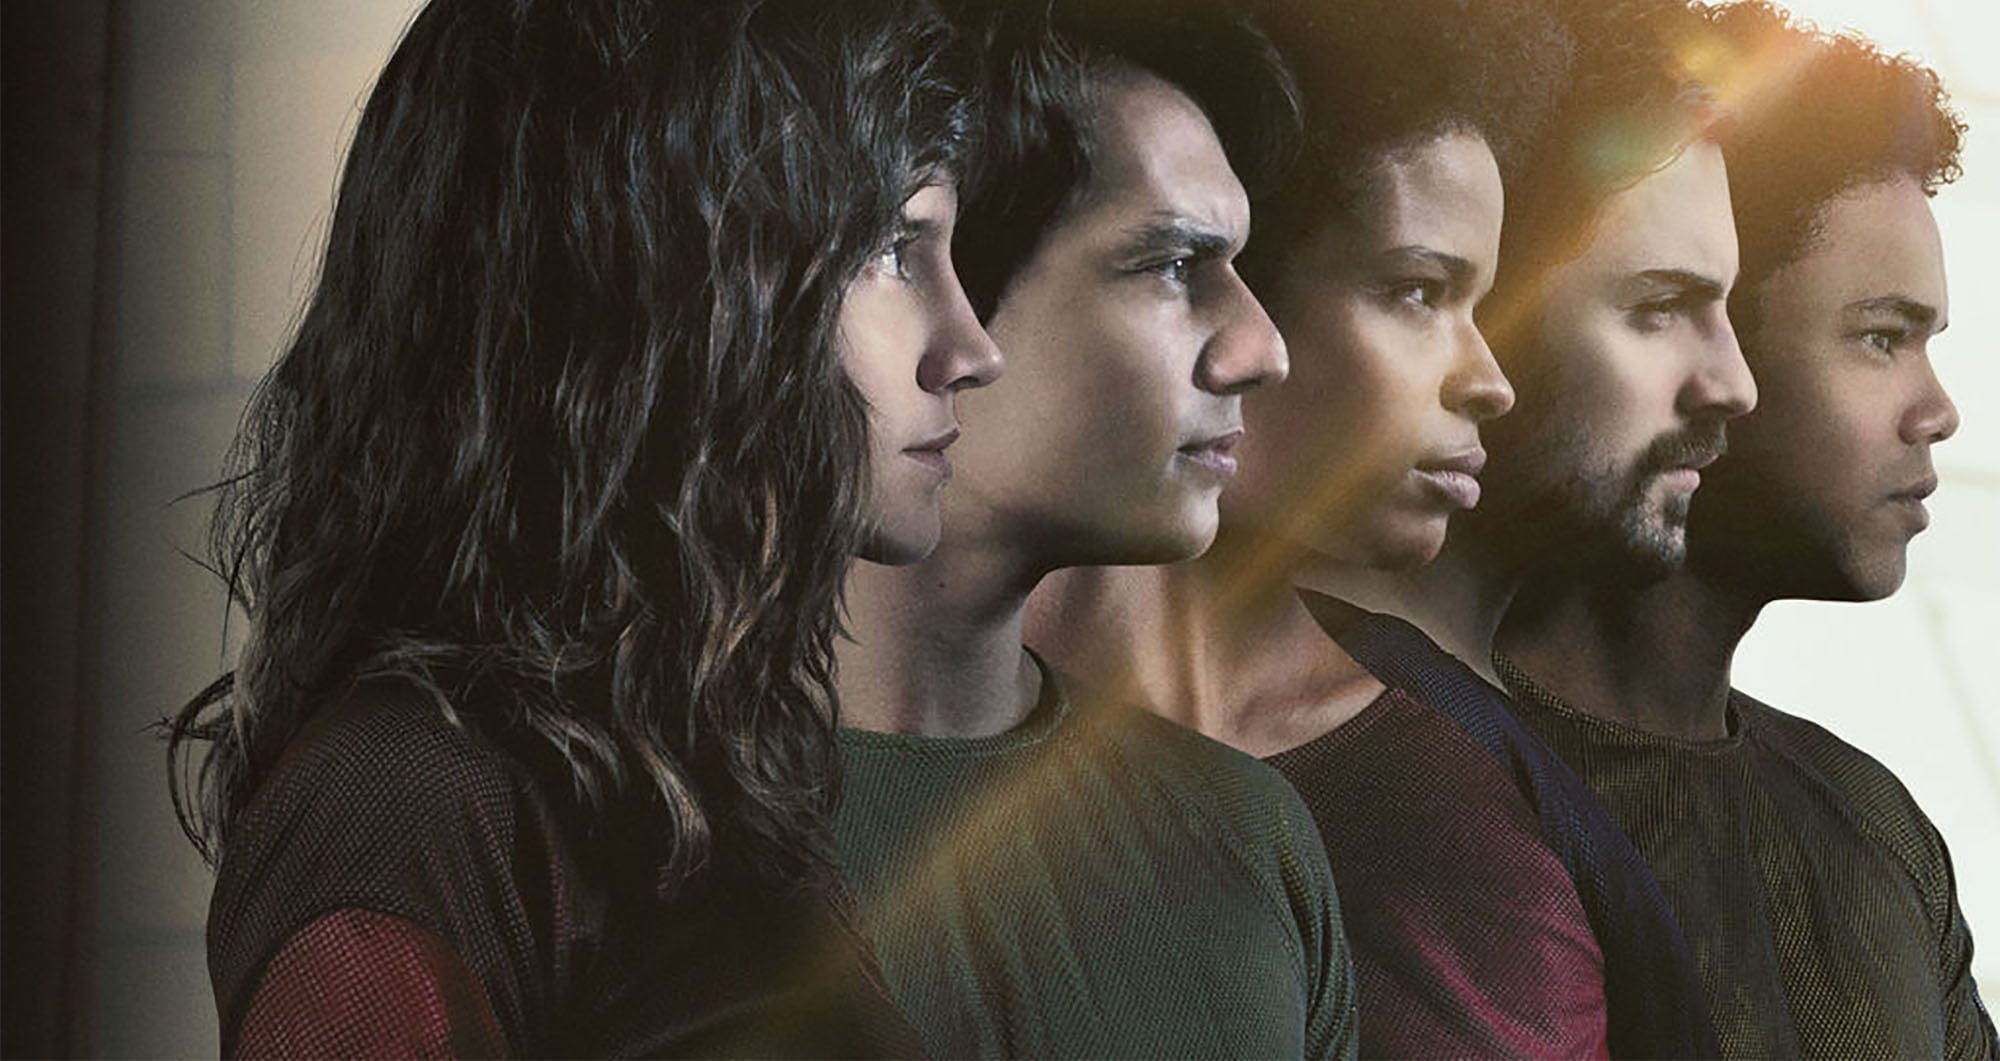 Streaming giant Netflix first aired brilliant dystopian series '3%' in 2016 as its first original Brazilian-shot production.